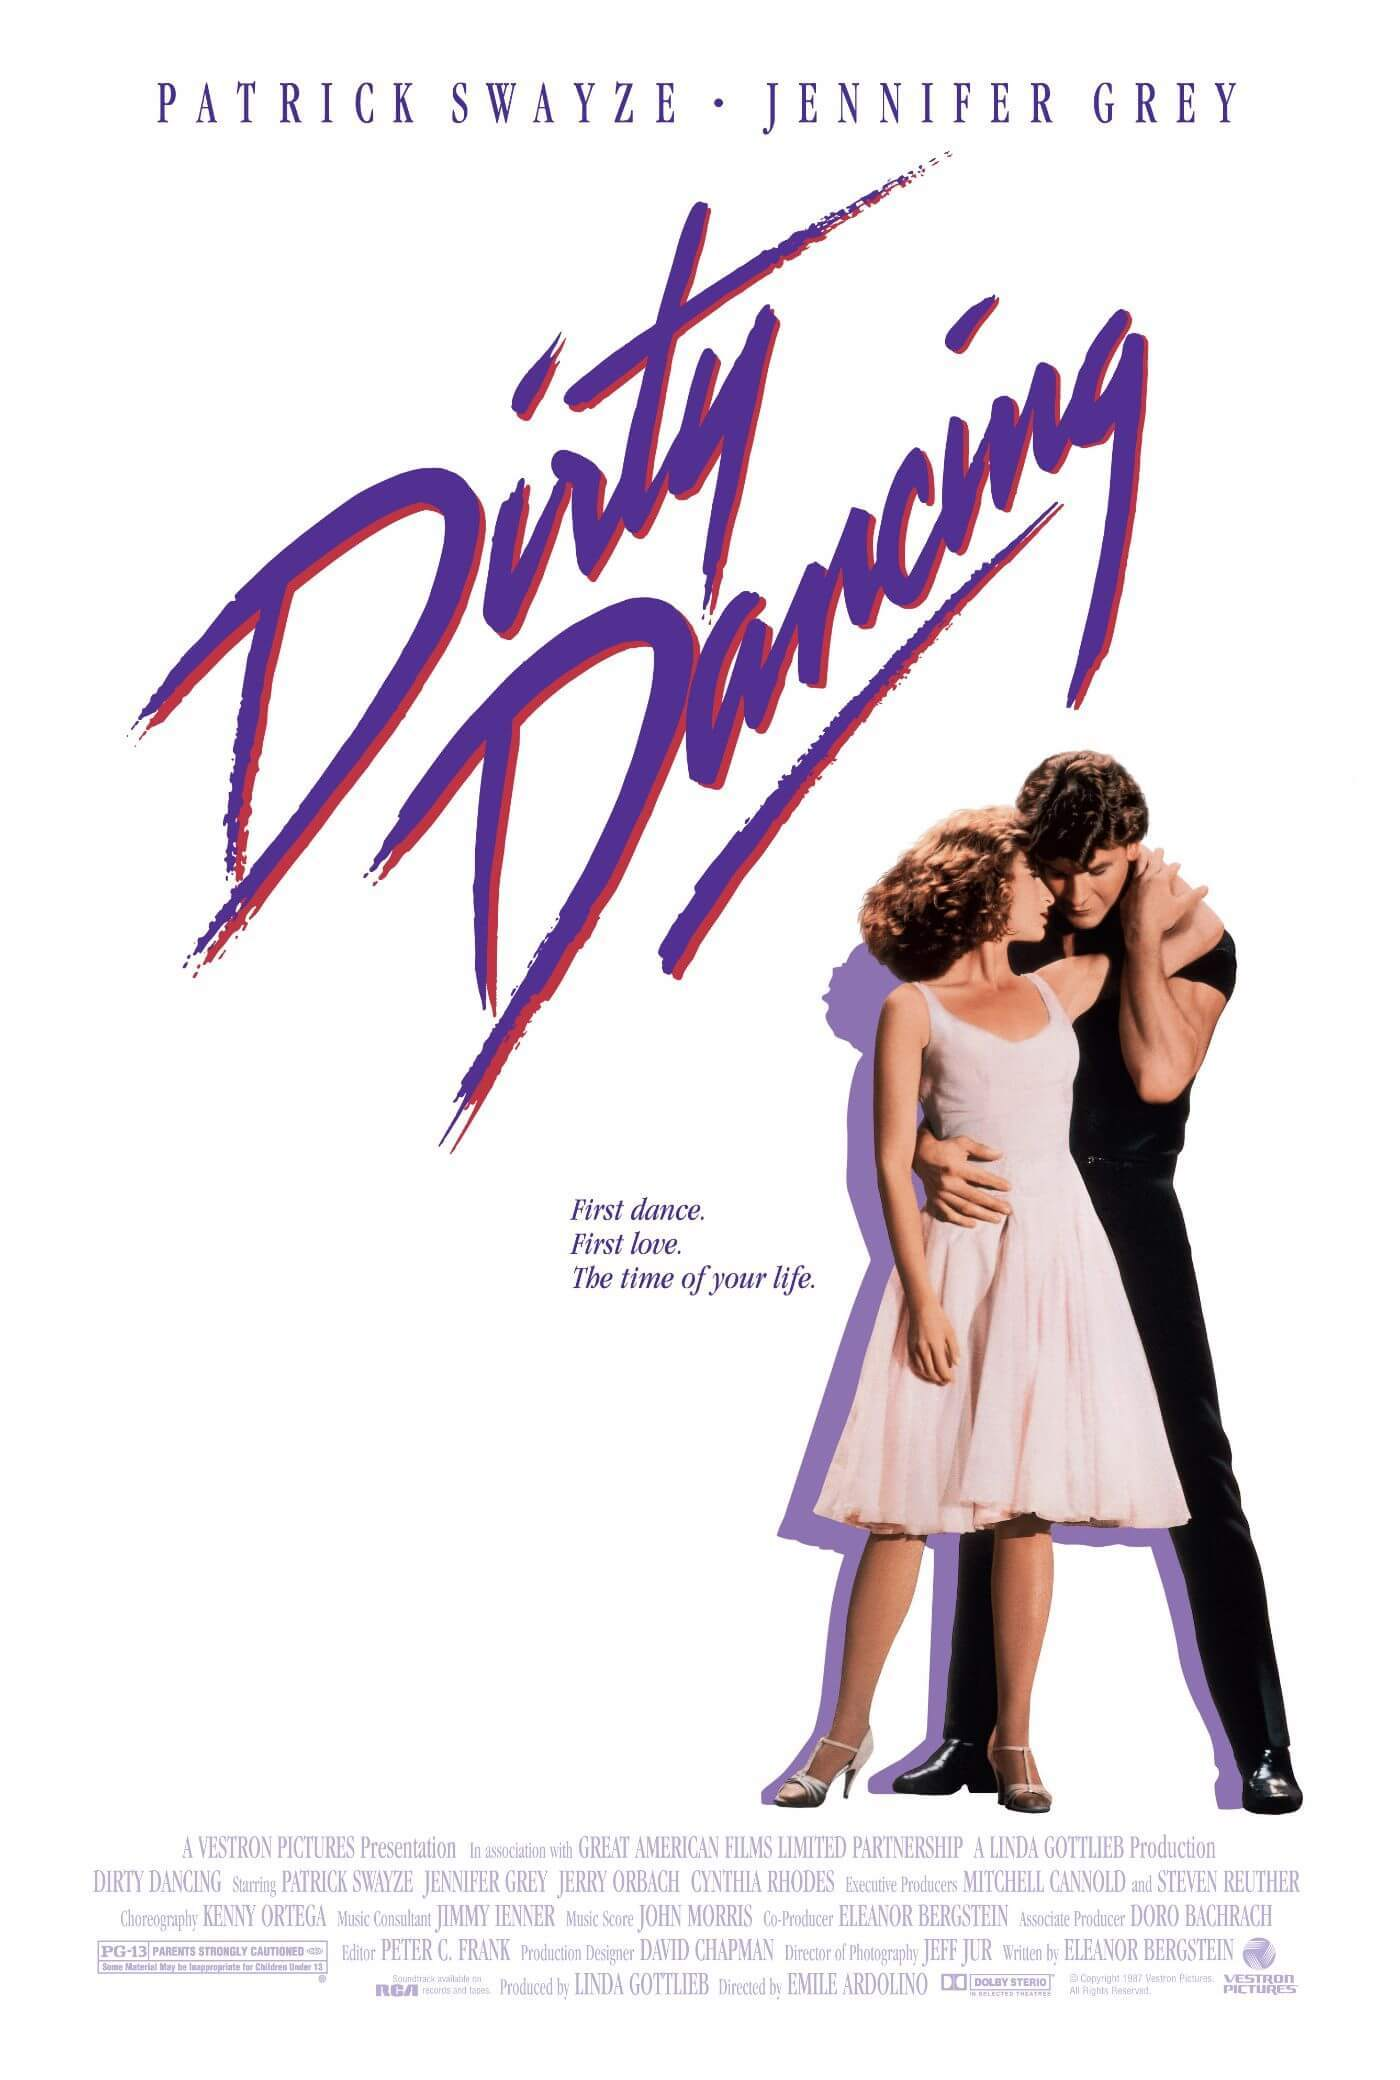 Dirty Dancing - Patrick Swayze - Hollywood English Musical Movie Poster - Life Size Posters